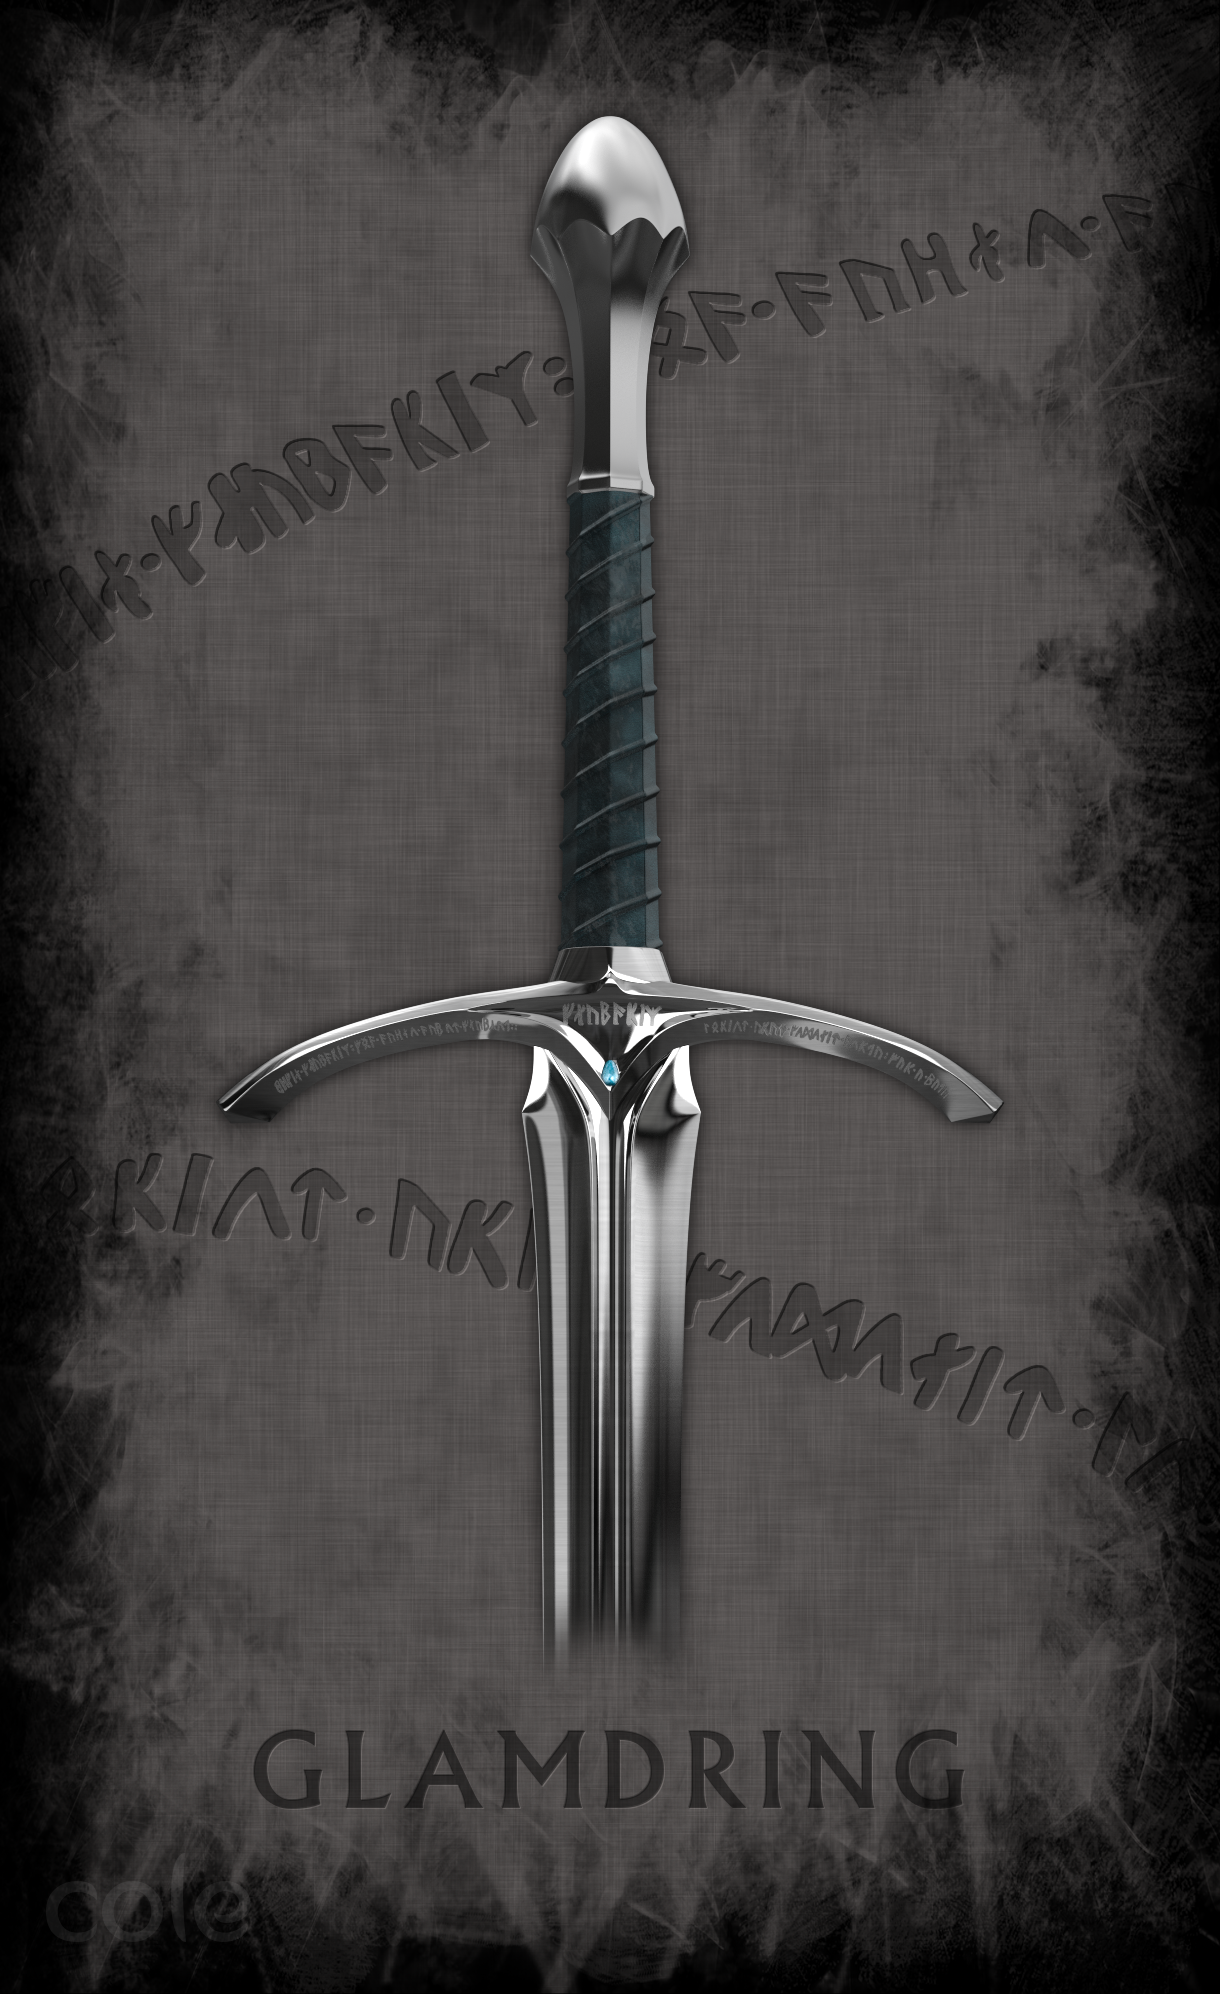 Glamdring Weapons of Middle Earth 1220x1994